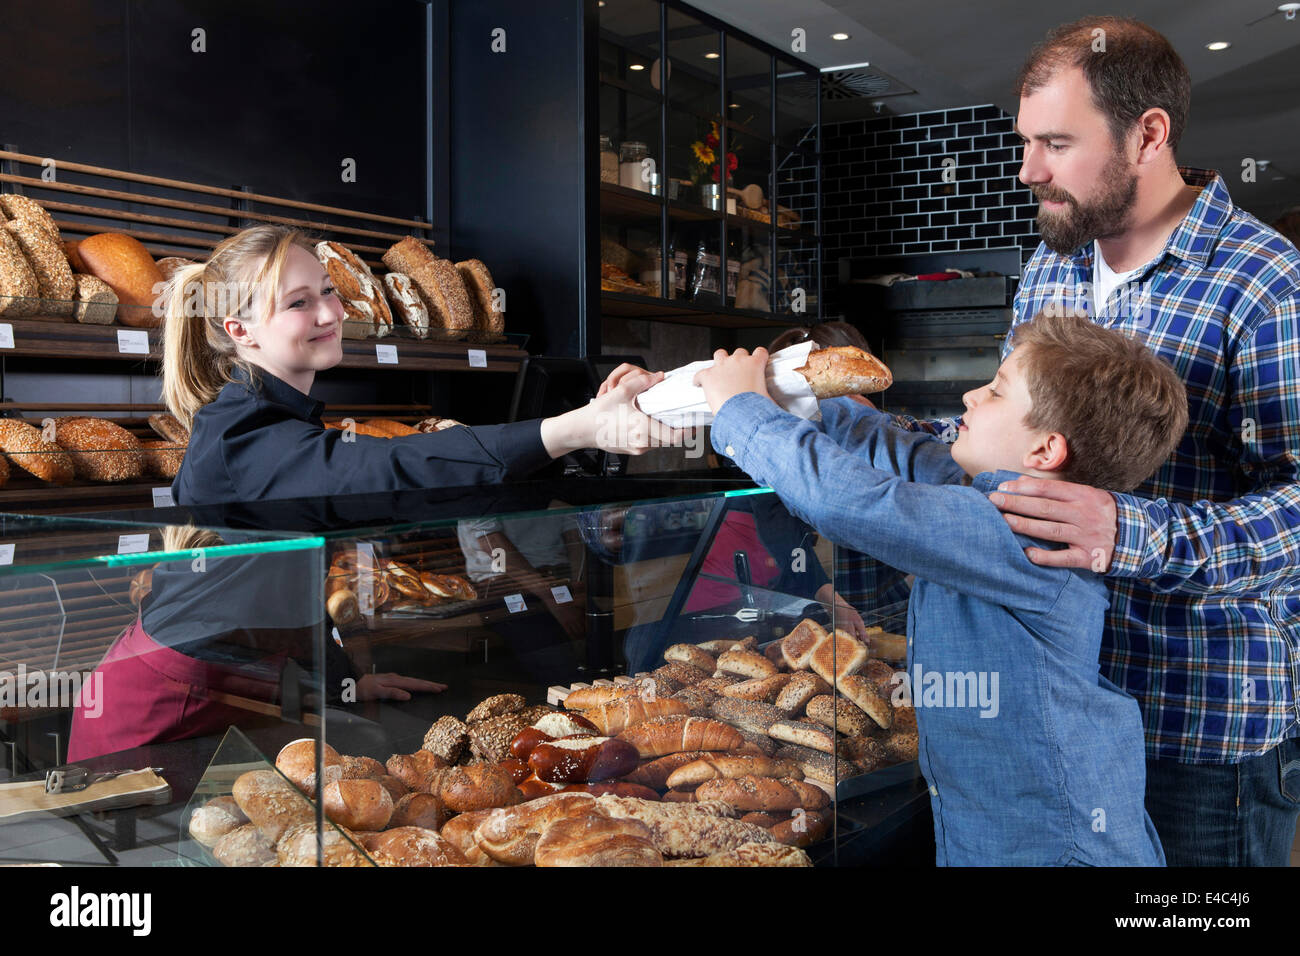 Father and son buying bread in a bakery - Stock Image